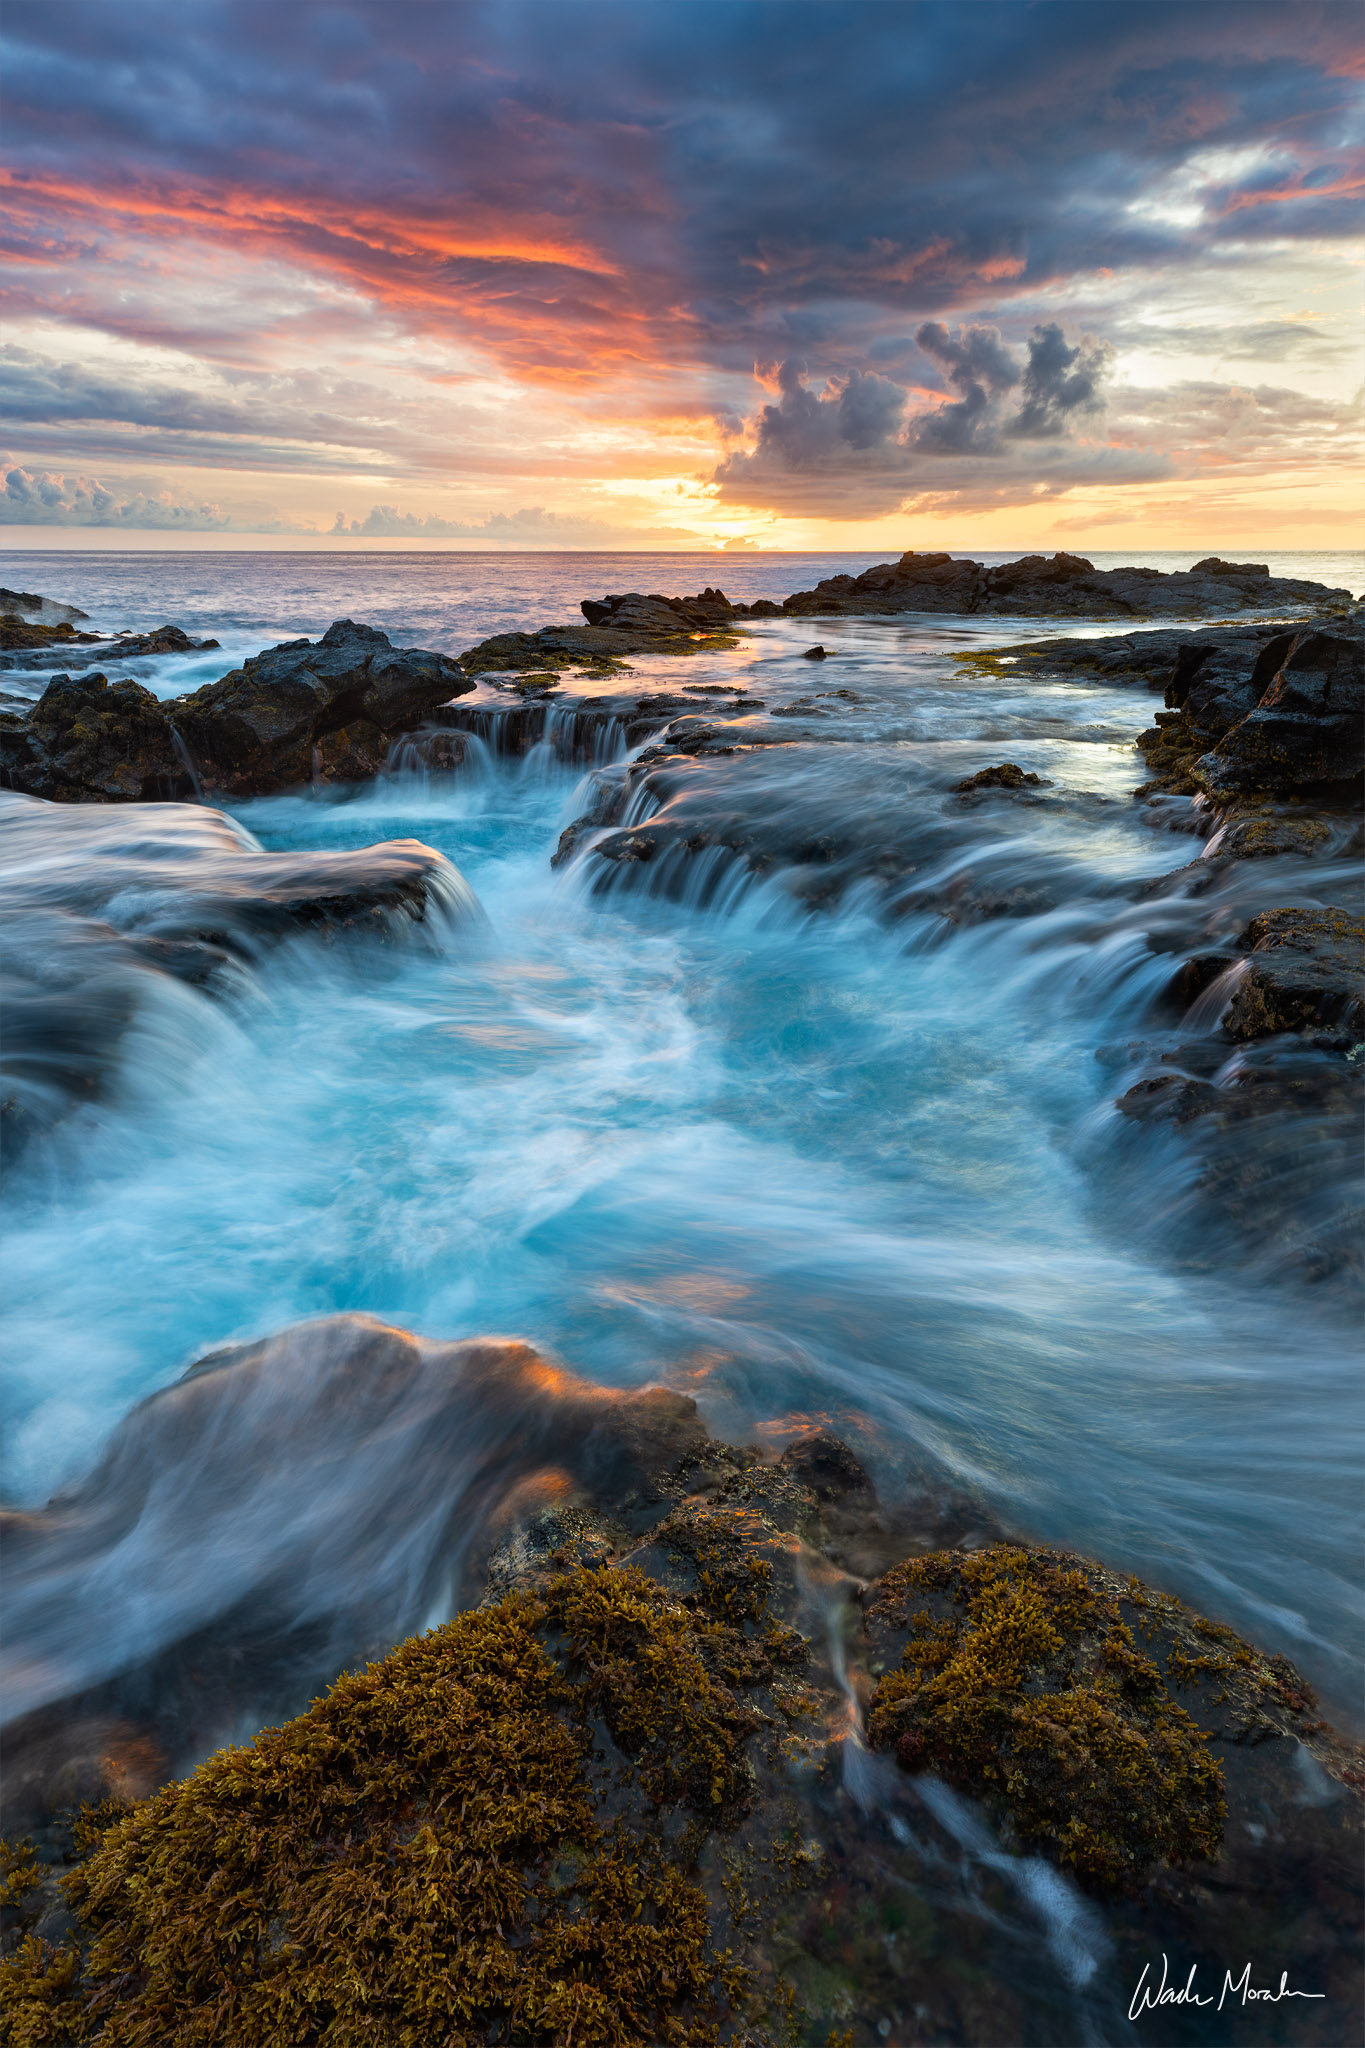 A lava tube fills and drains with tranquil blue water while being gently illuminated by the fleeting light of a Kona sunset....